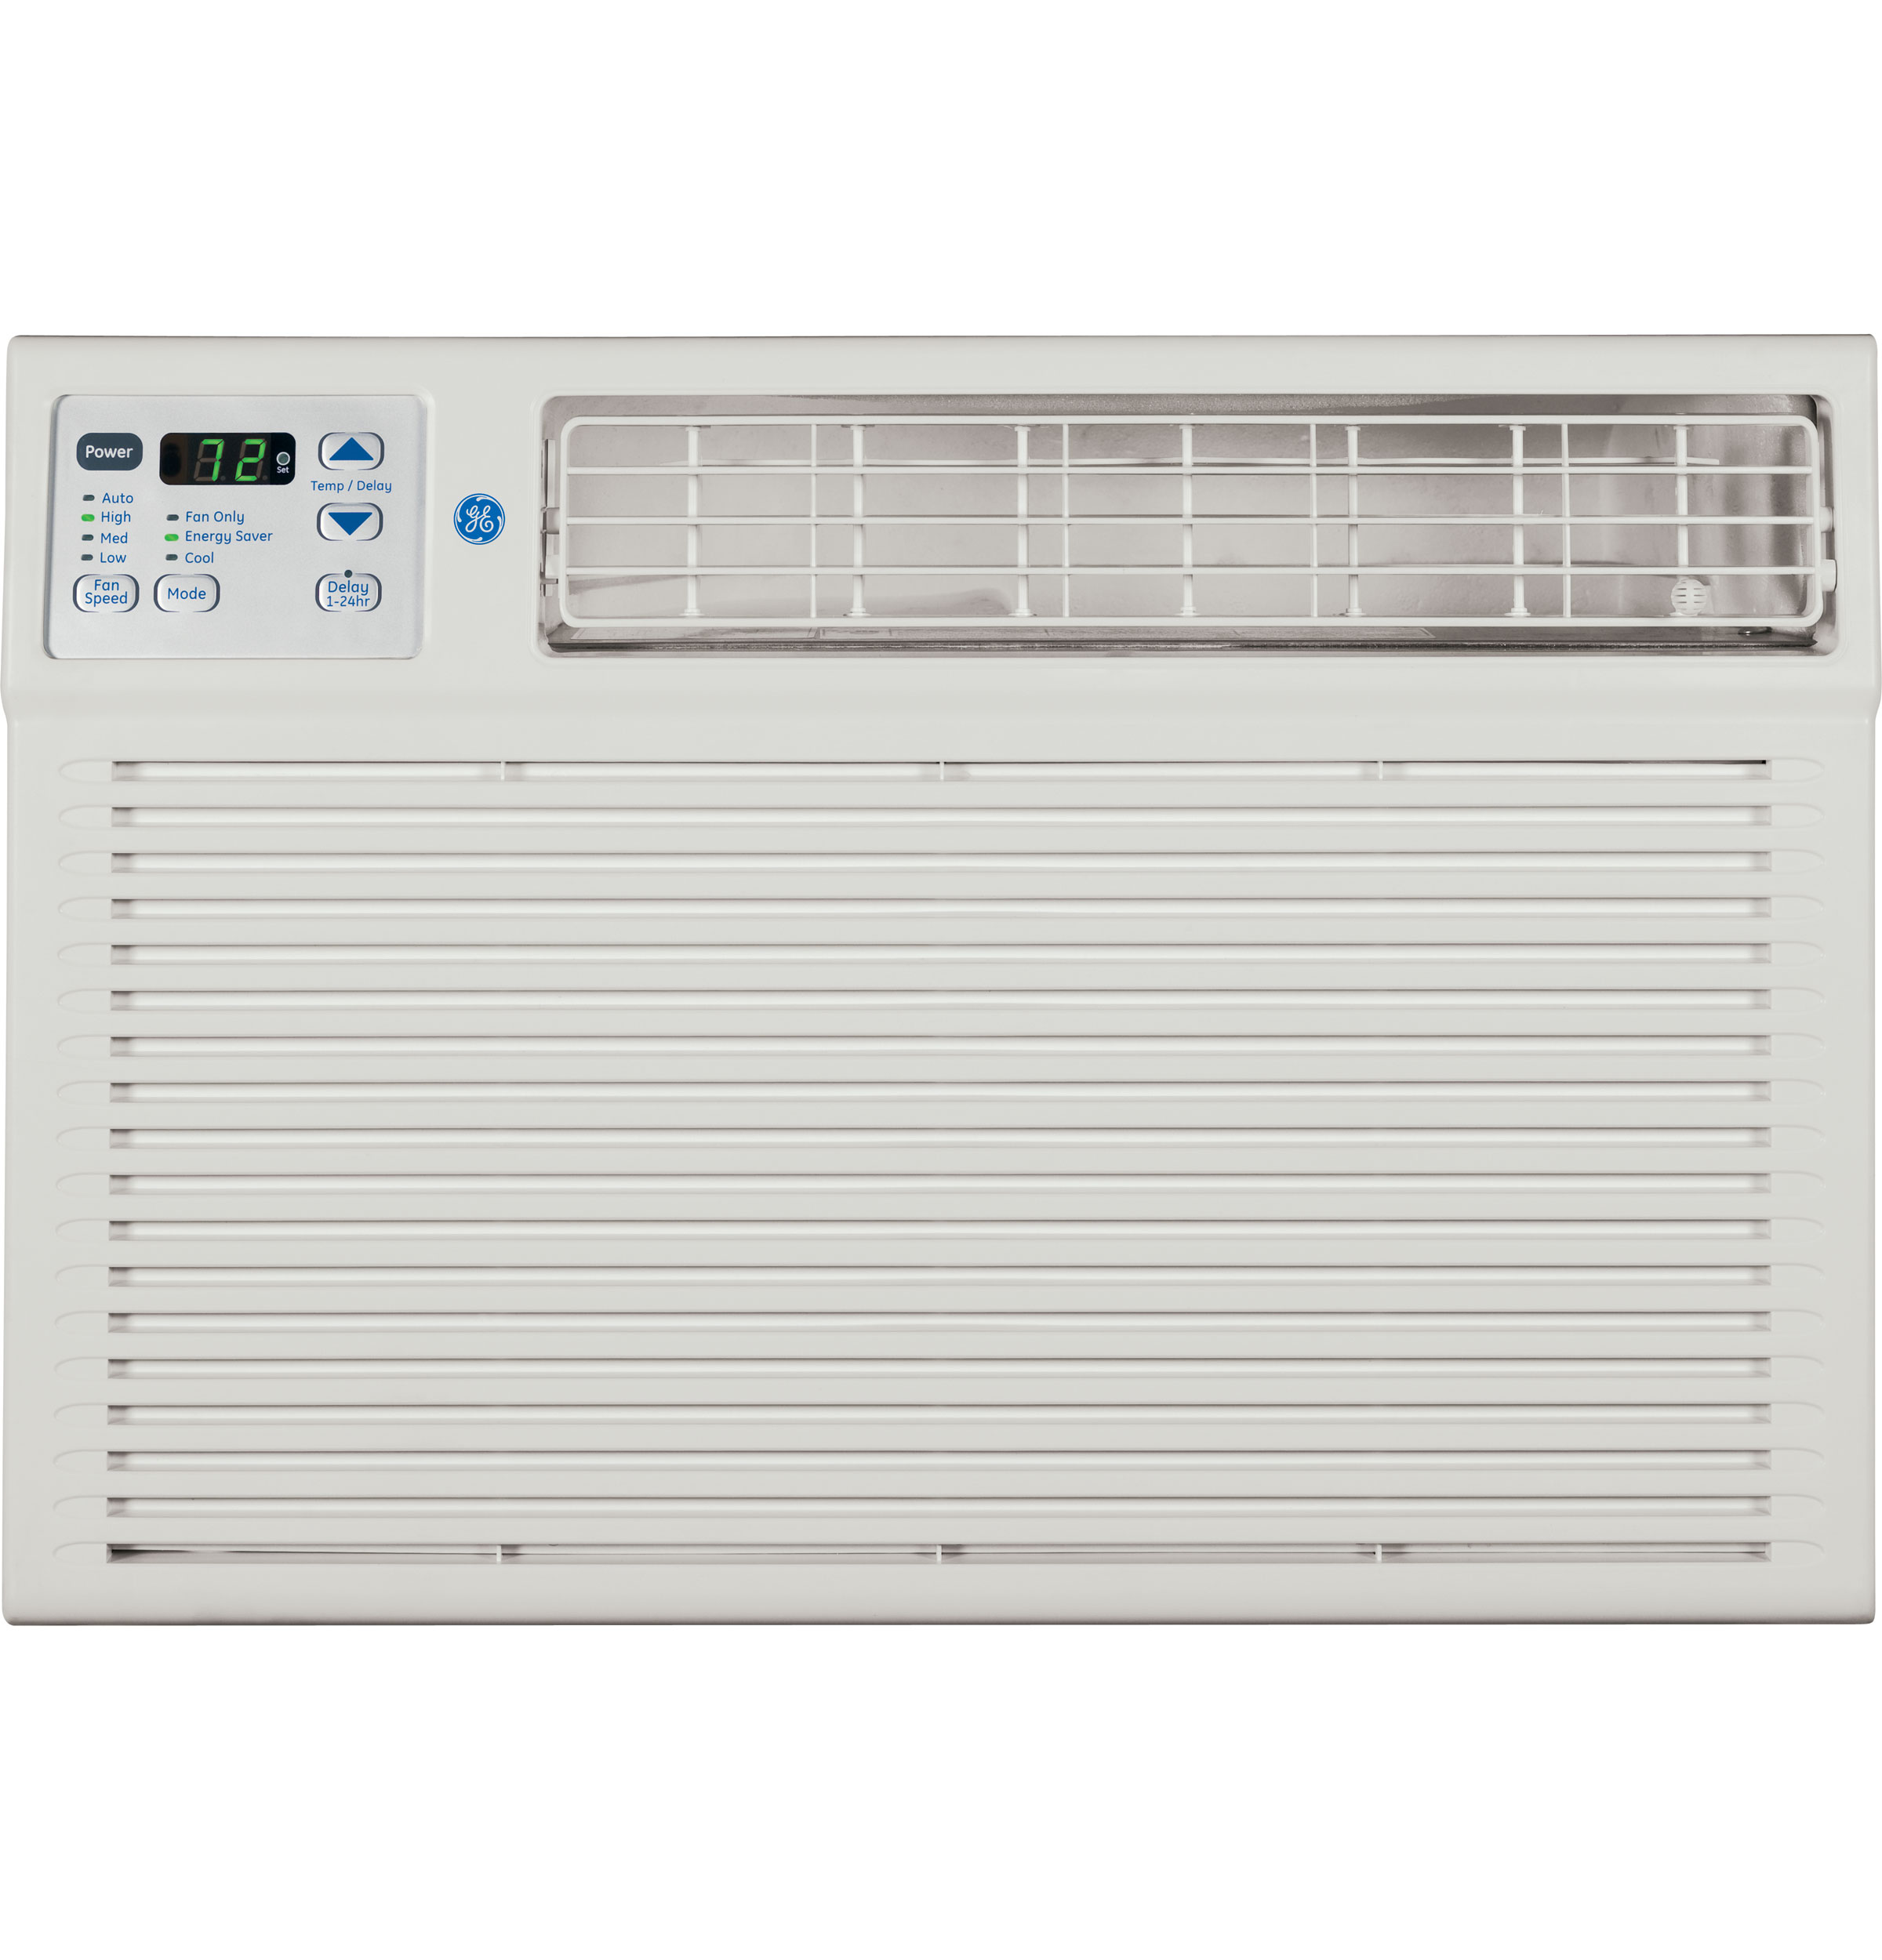 Ge Window Air Conditioner Manual on ge ice maker schematic, ge radio schematic, ge microwave schematic, ge air conditioner capacitor,